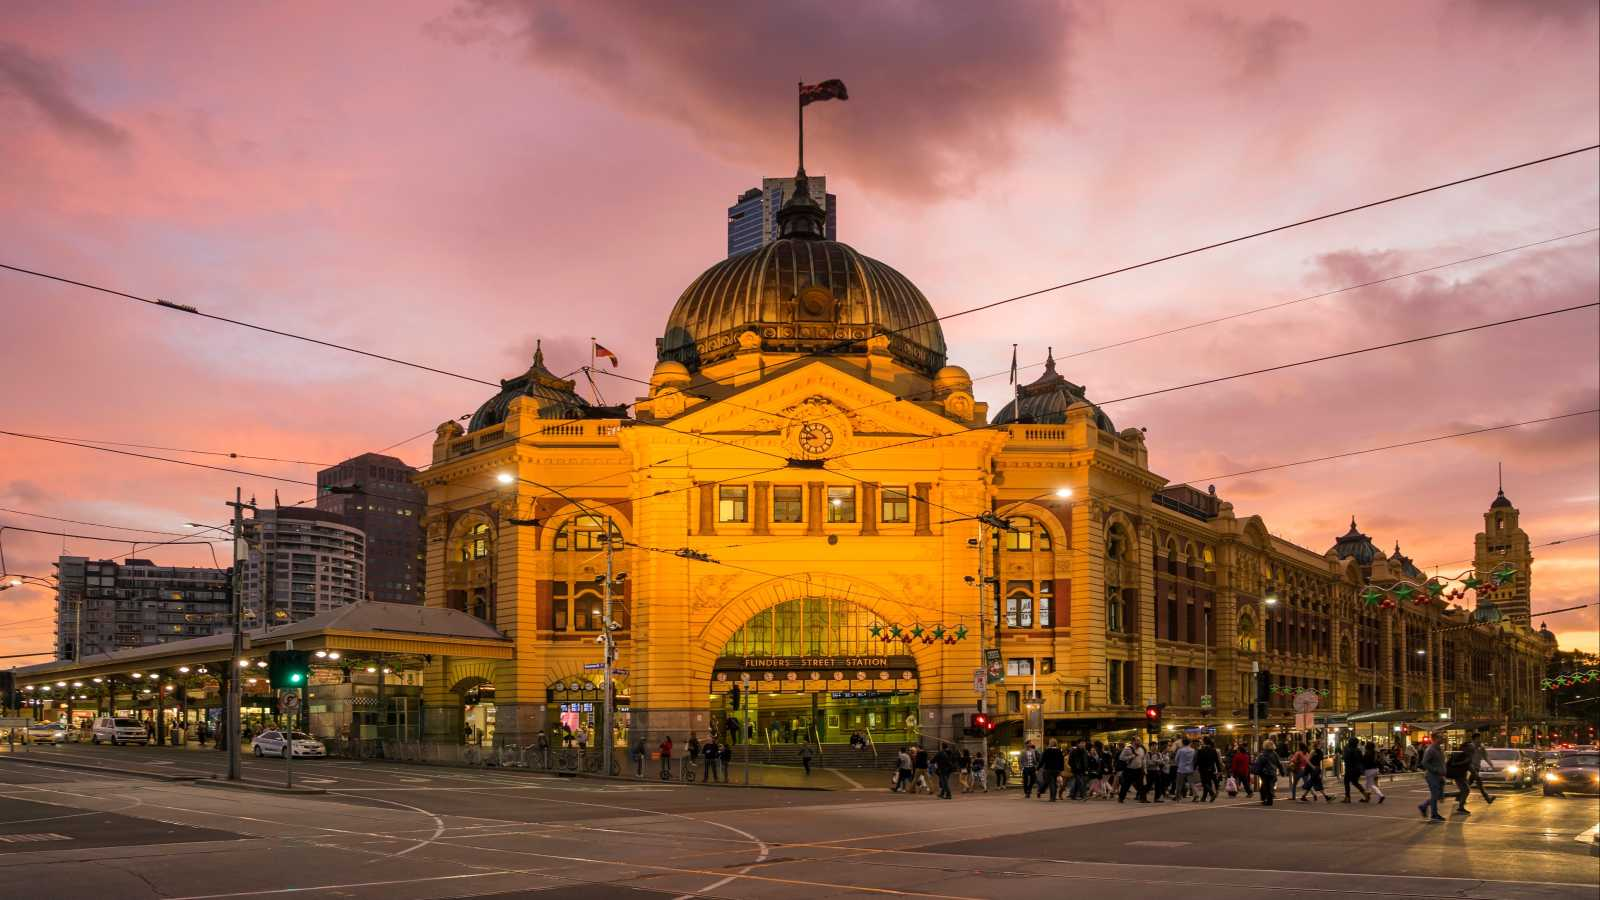 Sunset at Flinders Street in Melbourne.